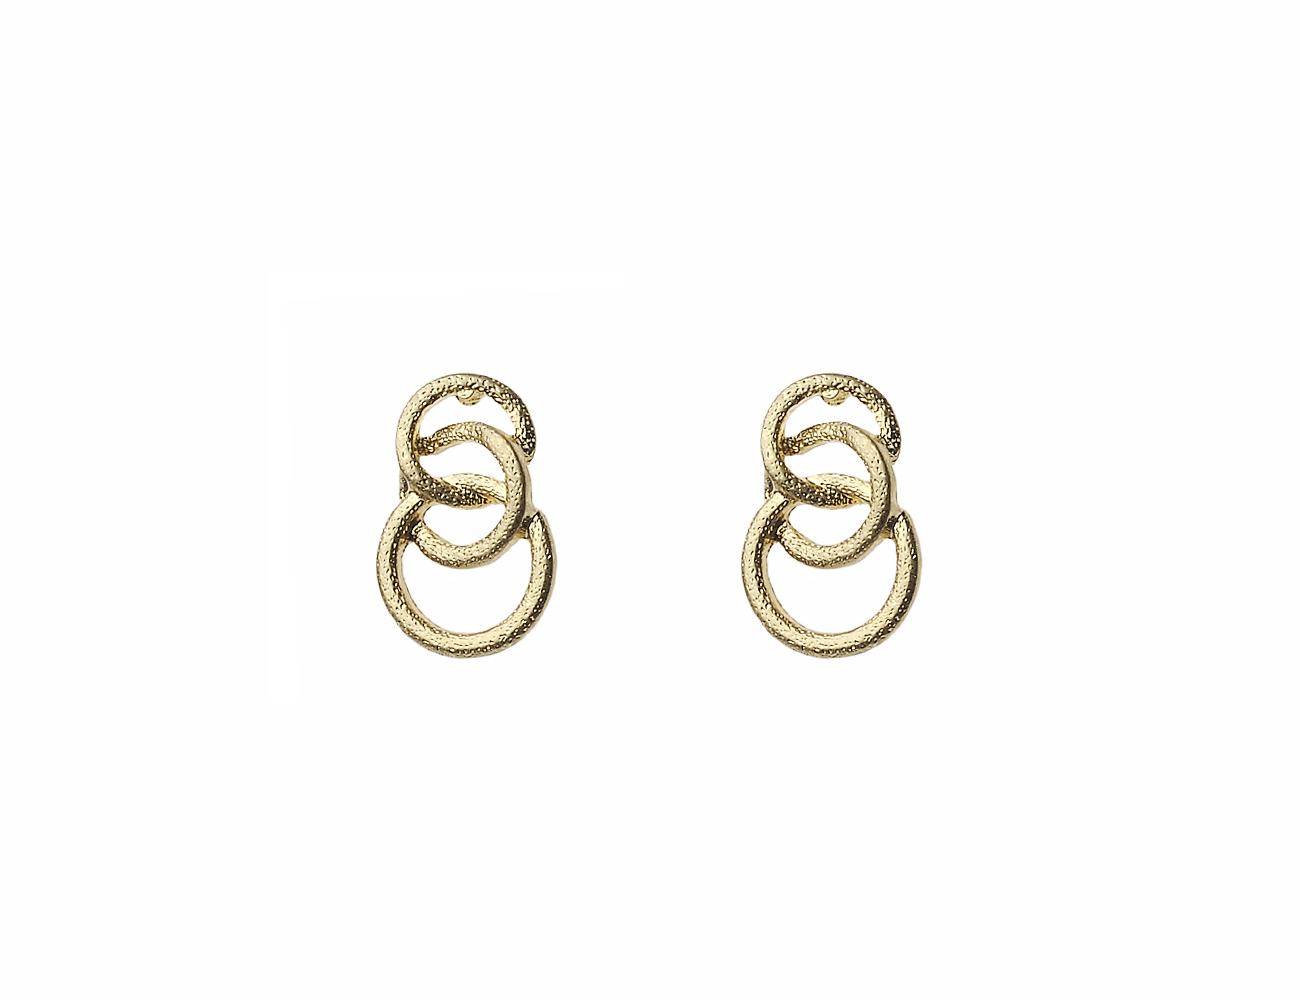 Worn Gold Textured 3 Small Hoop Earring